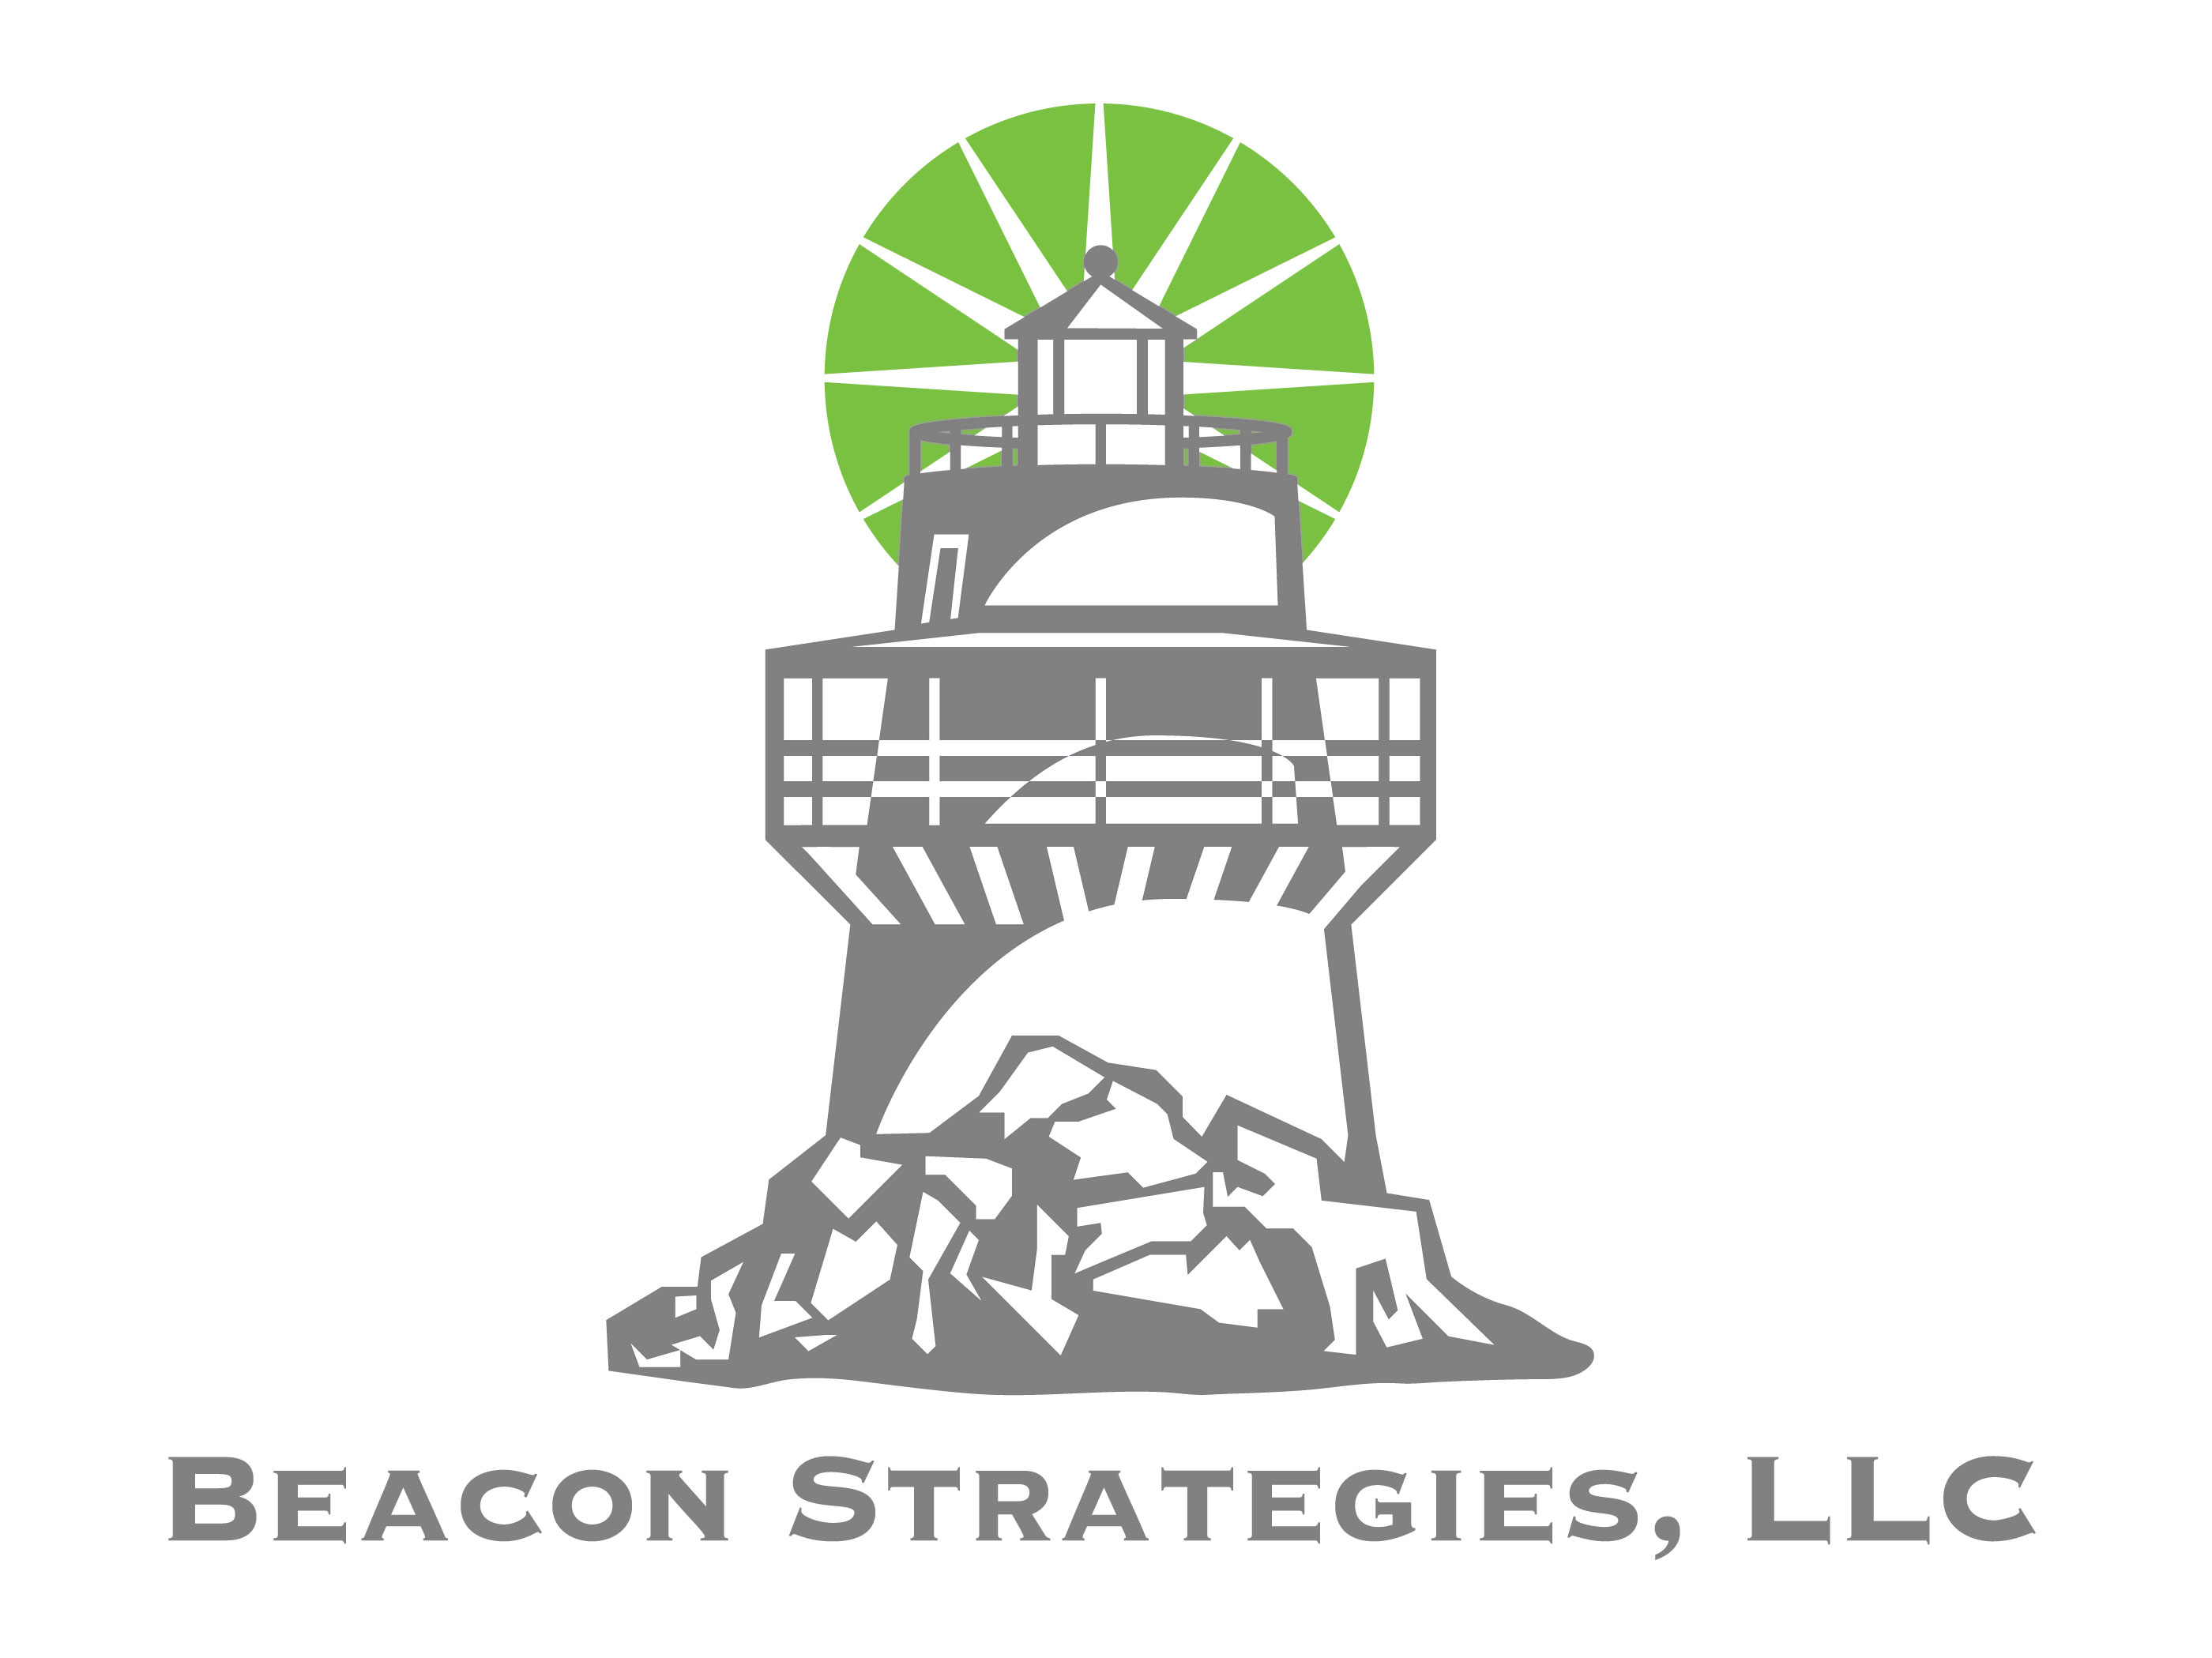 Beacon Strategies, LLC logo